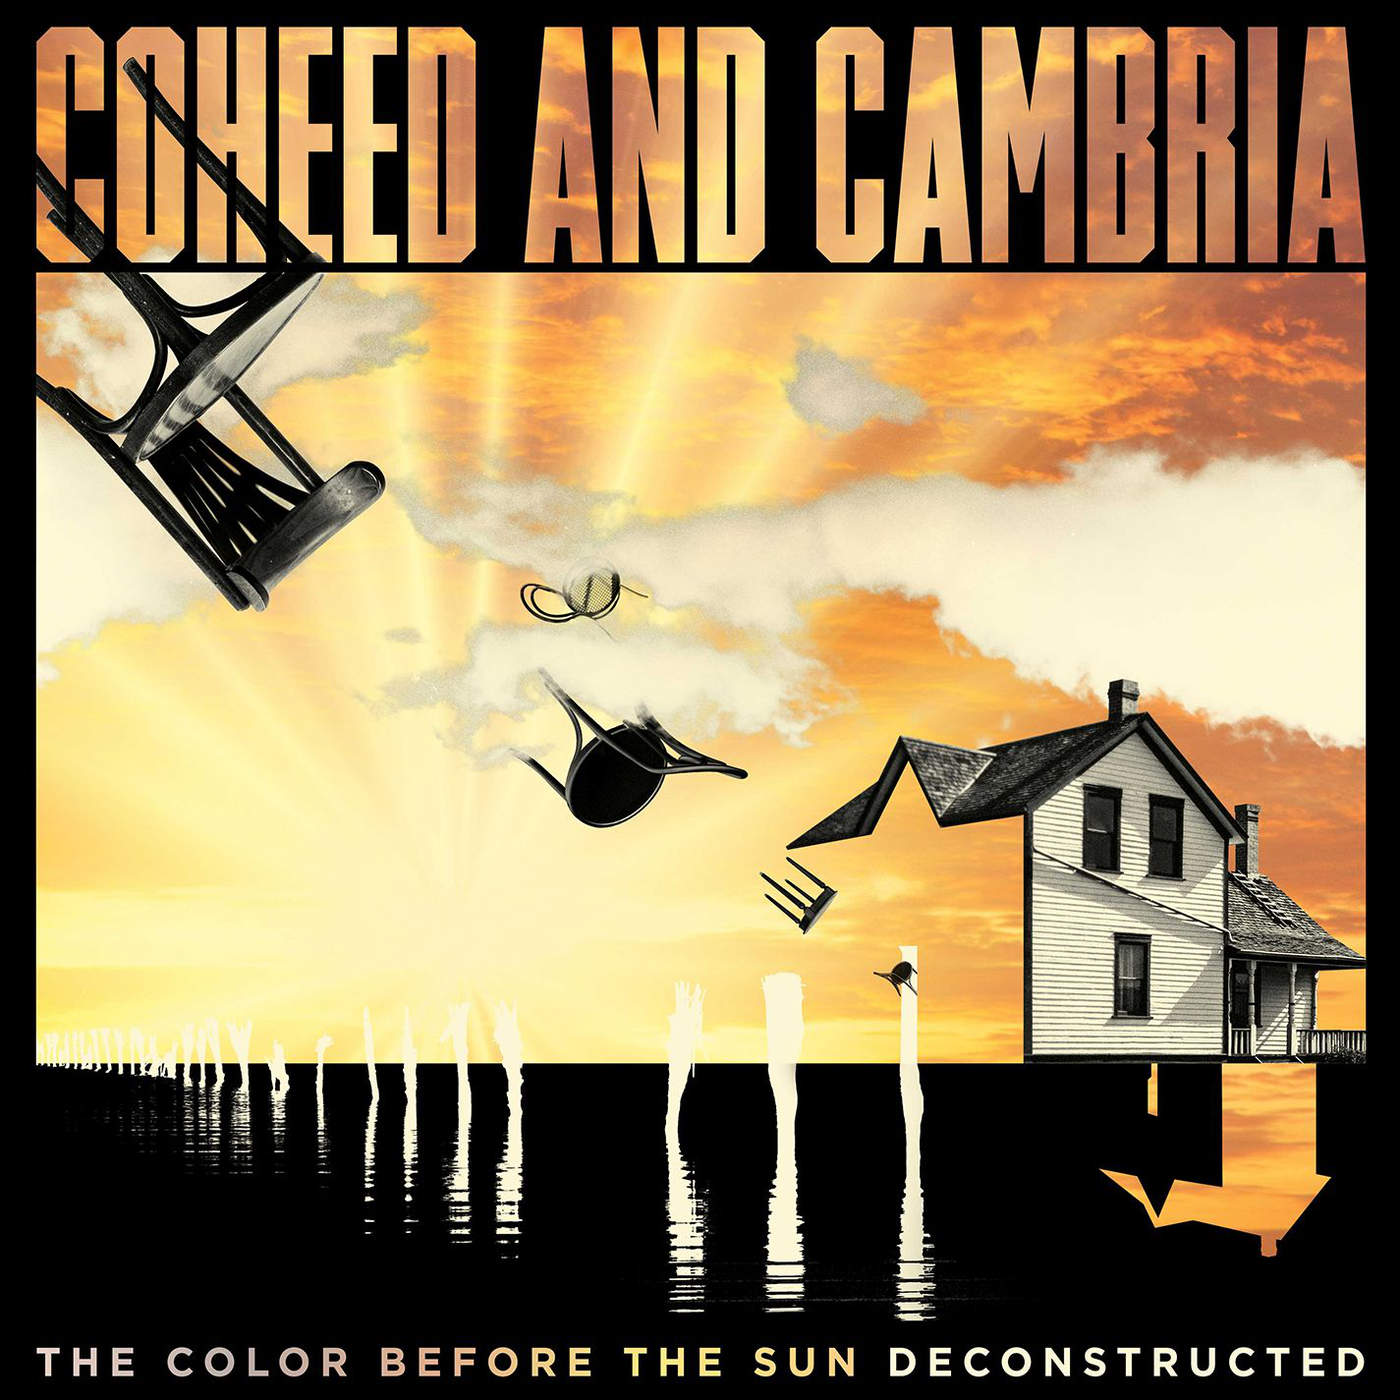 Coheed and Cambria - The Color Before the Sun (Deconstructed Deluxe) Cover